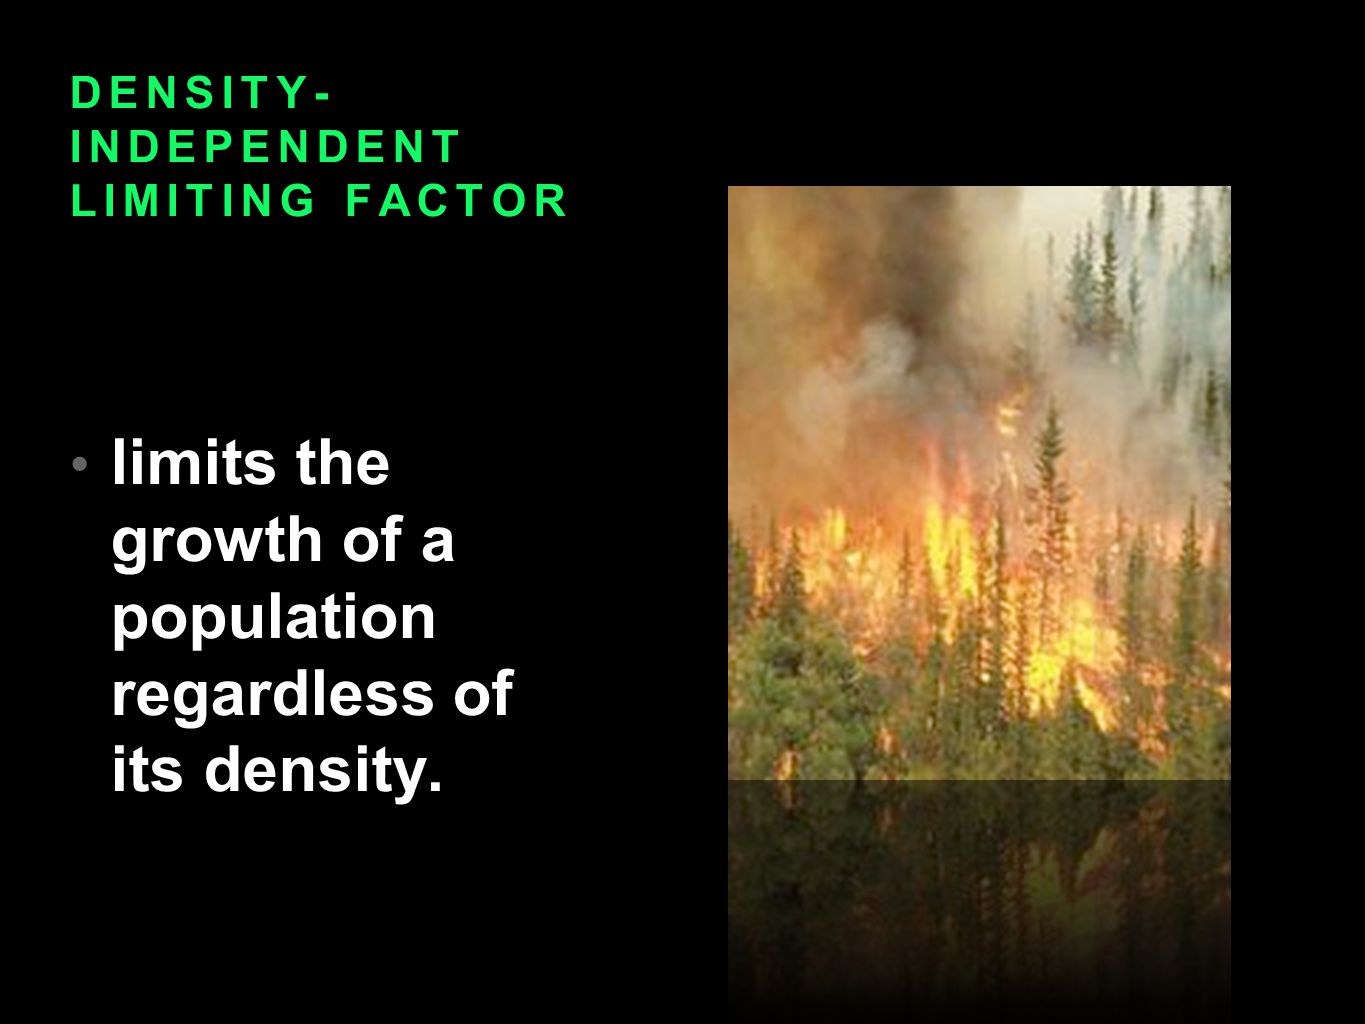 DENSITY- INDEPENDENT LIMITING FACTOR limits the growth of a population regardless of its density.